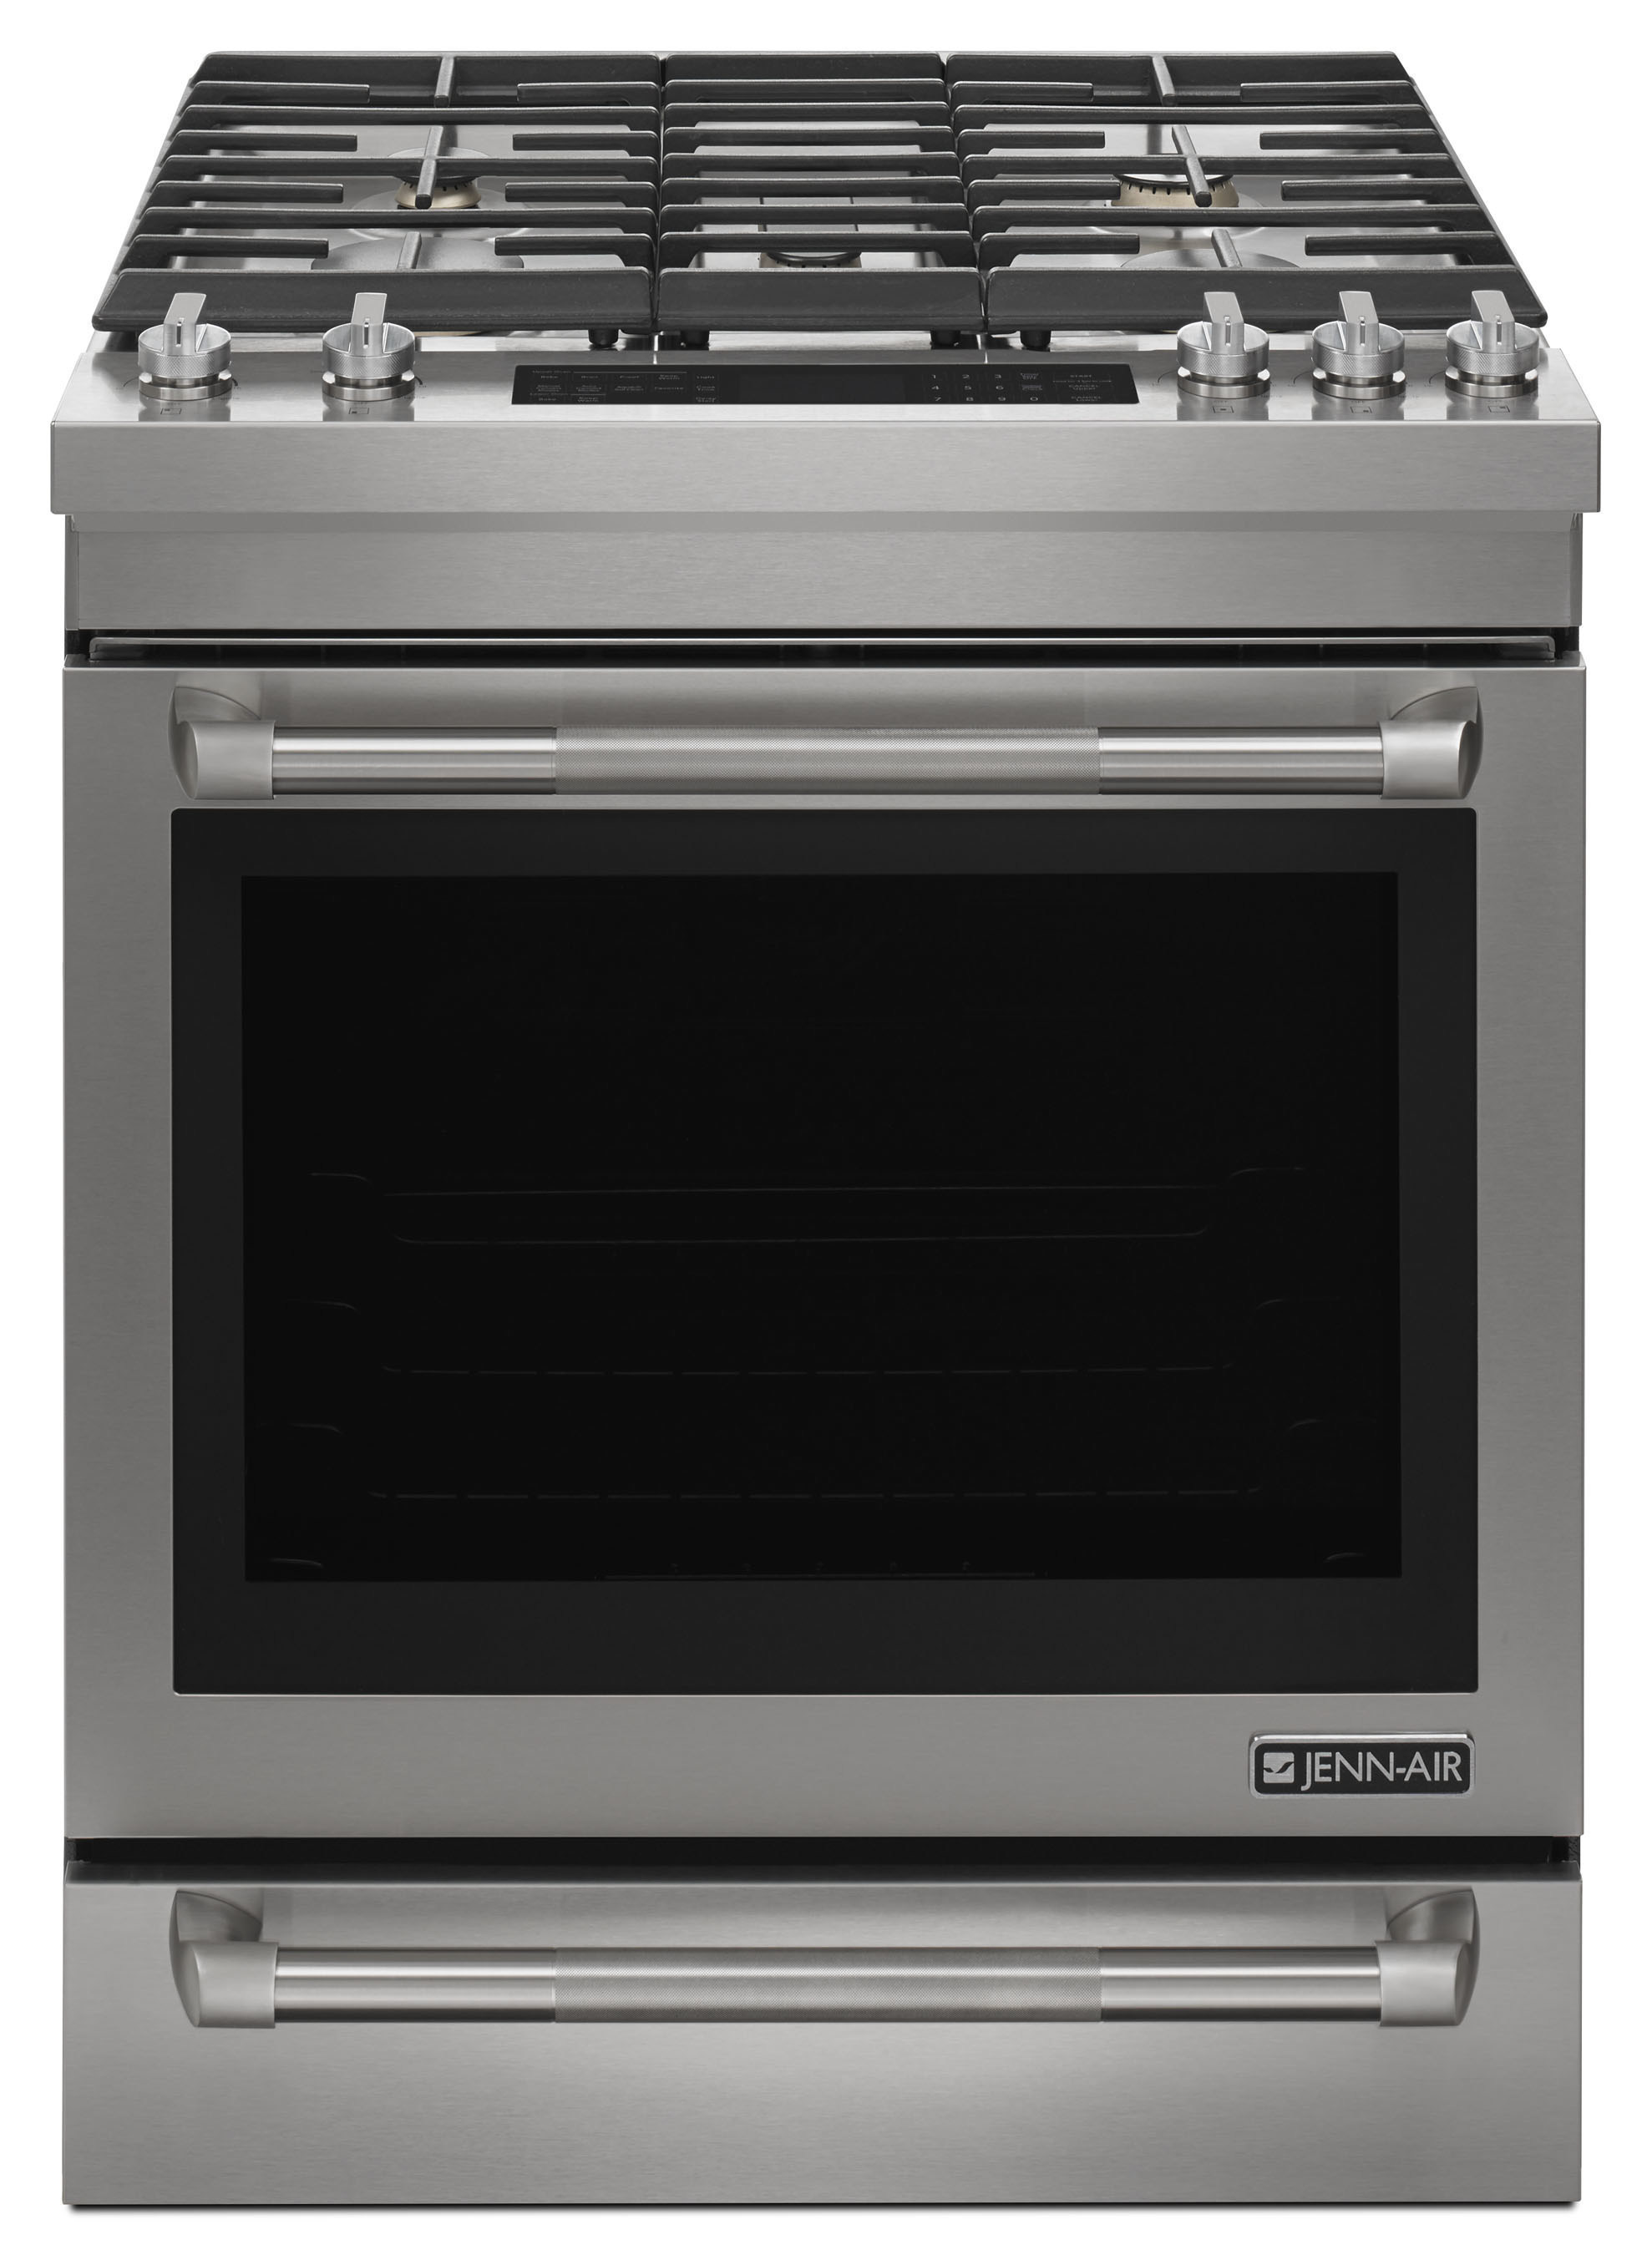 Jenn-Air brand's new collection of 30-inch ranges are offered in dual-fuel, gas, induction and radiant ...